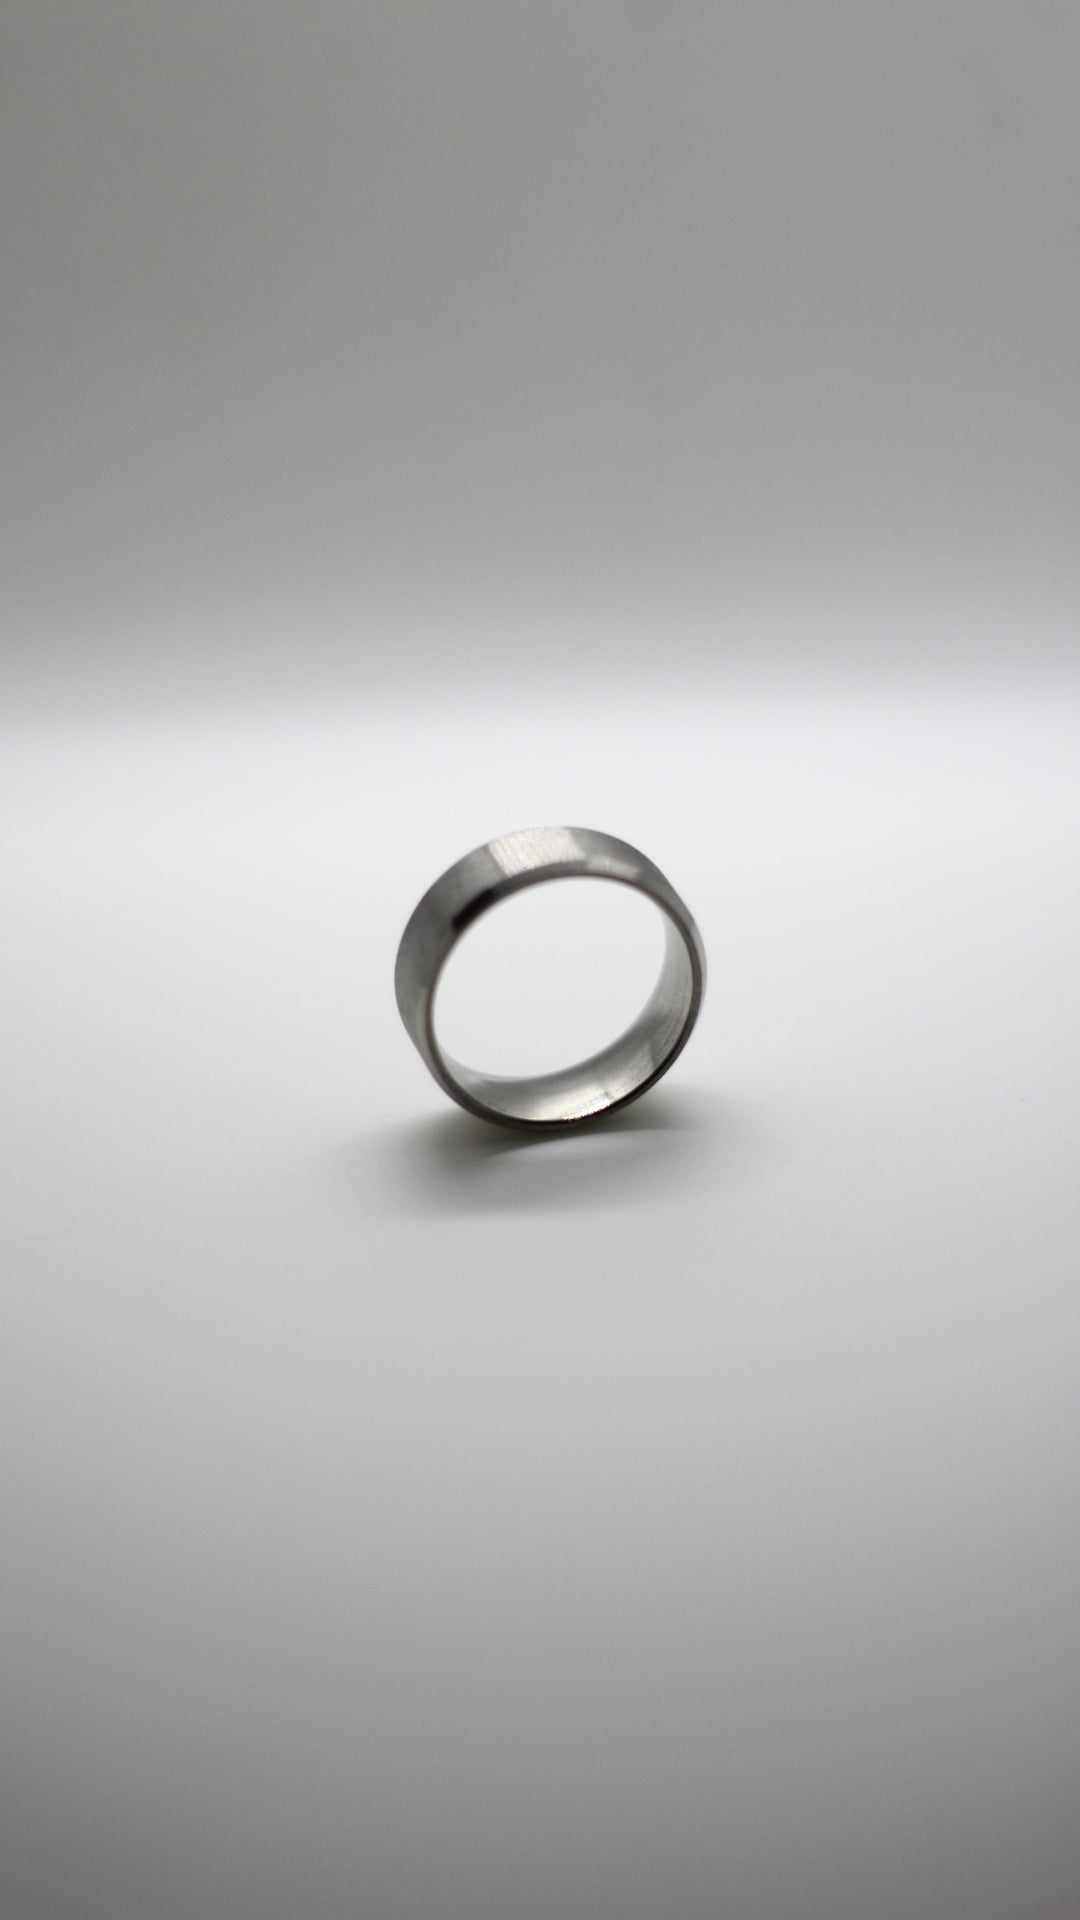 Image of Silver Titanium Ring